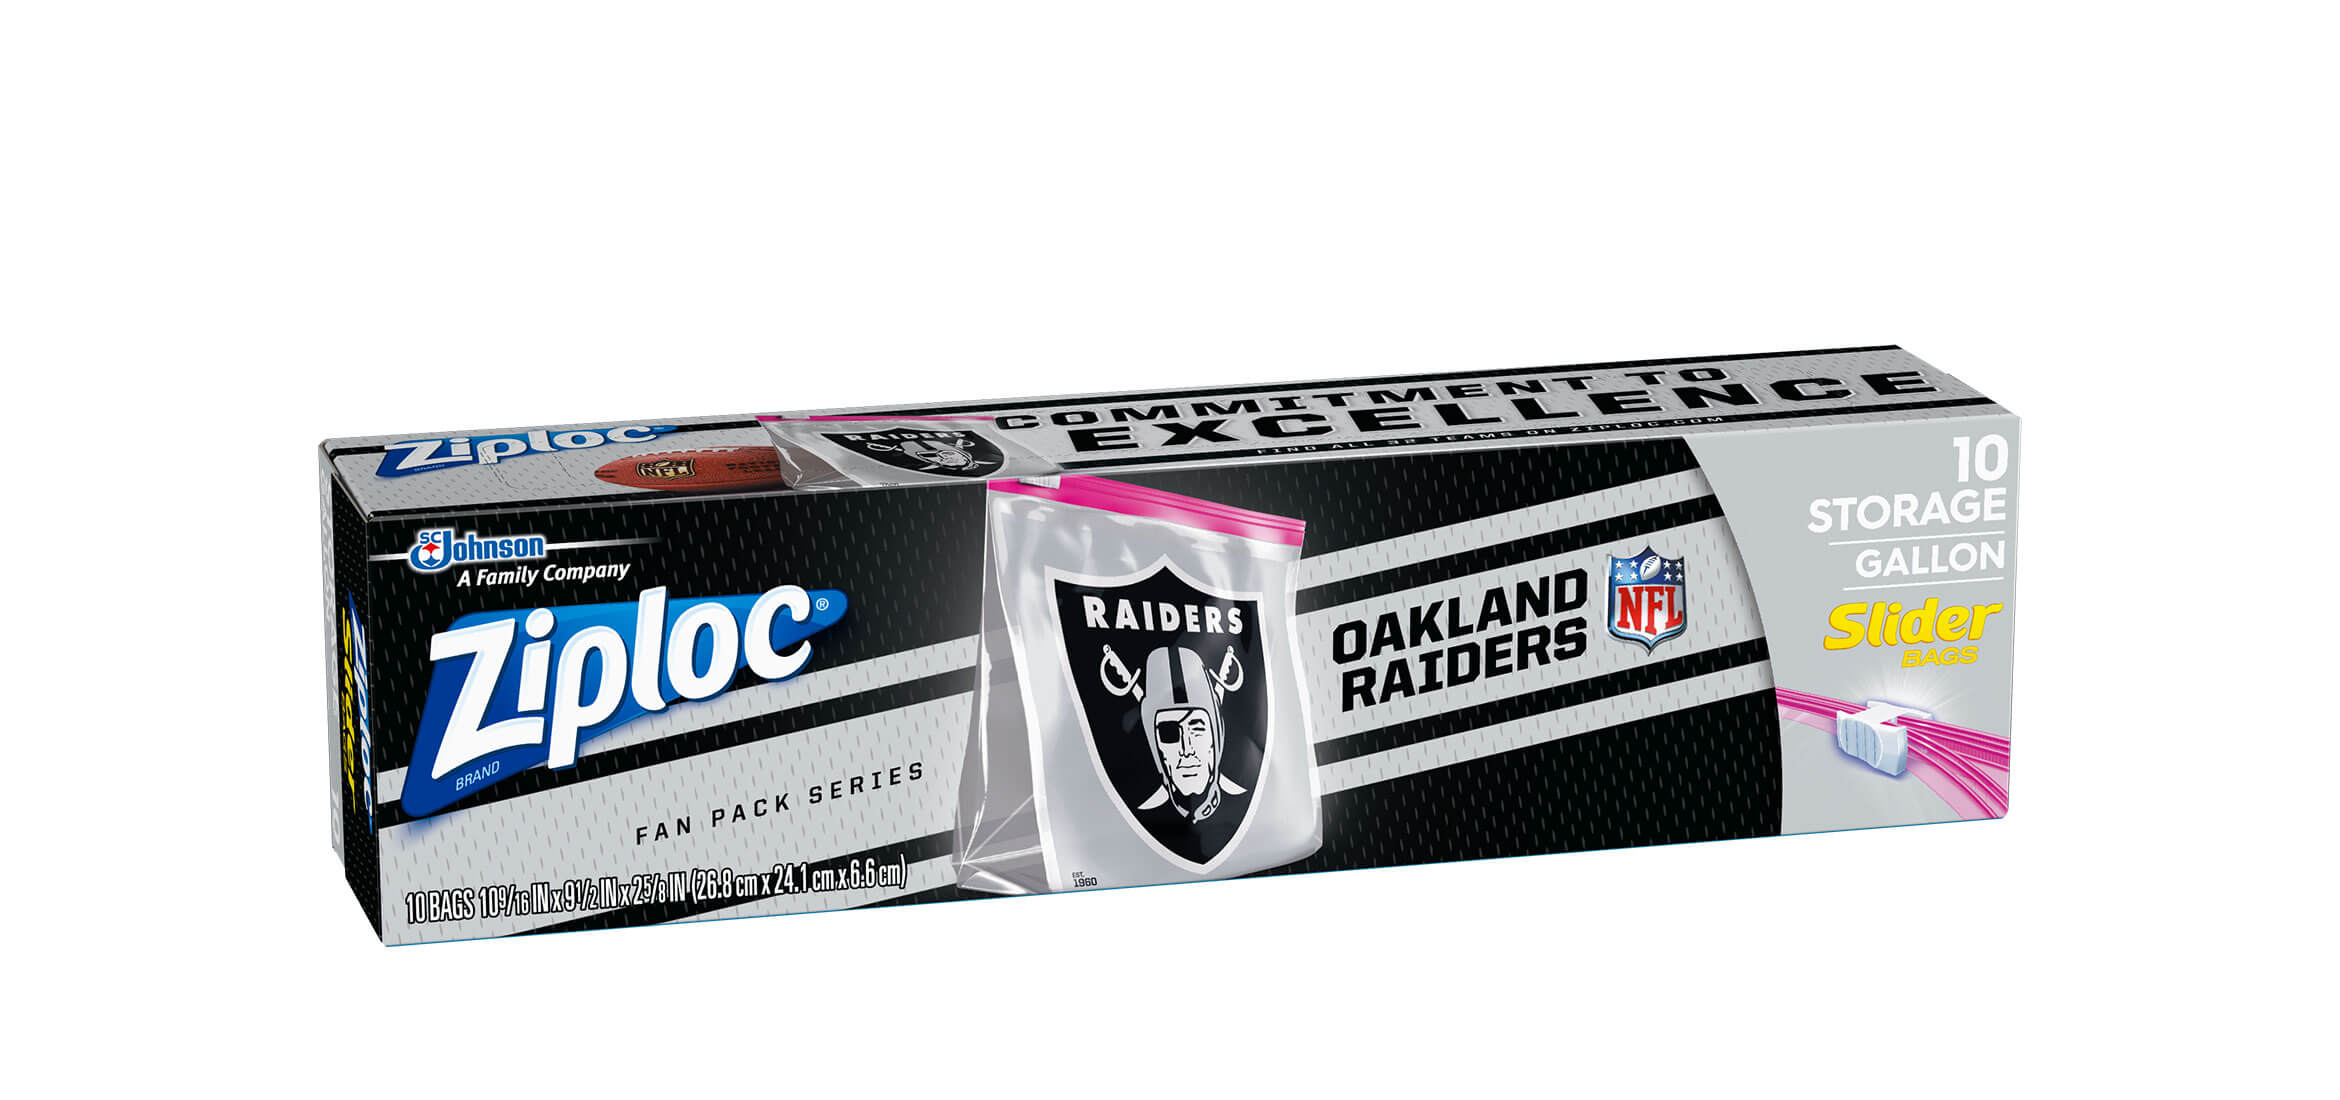 Oakland-Raiders-Slider-Storage-Gallon-Angle-2X